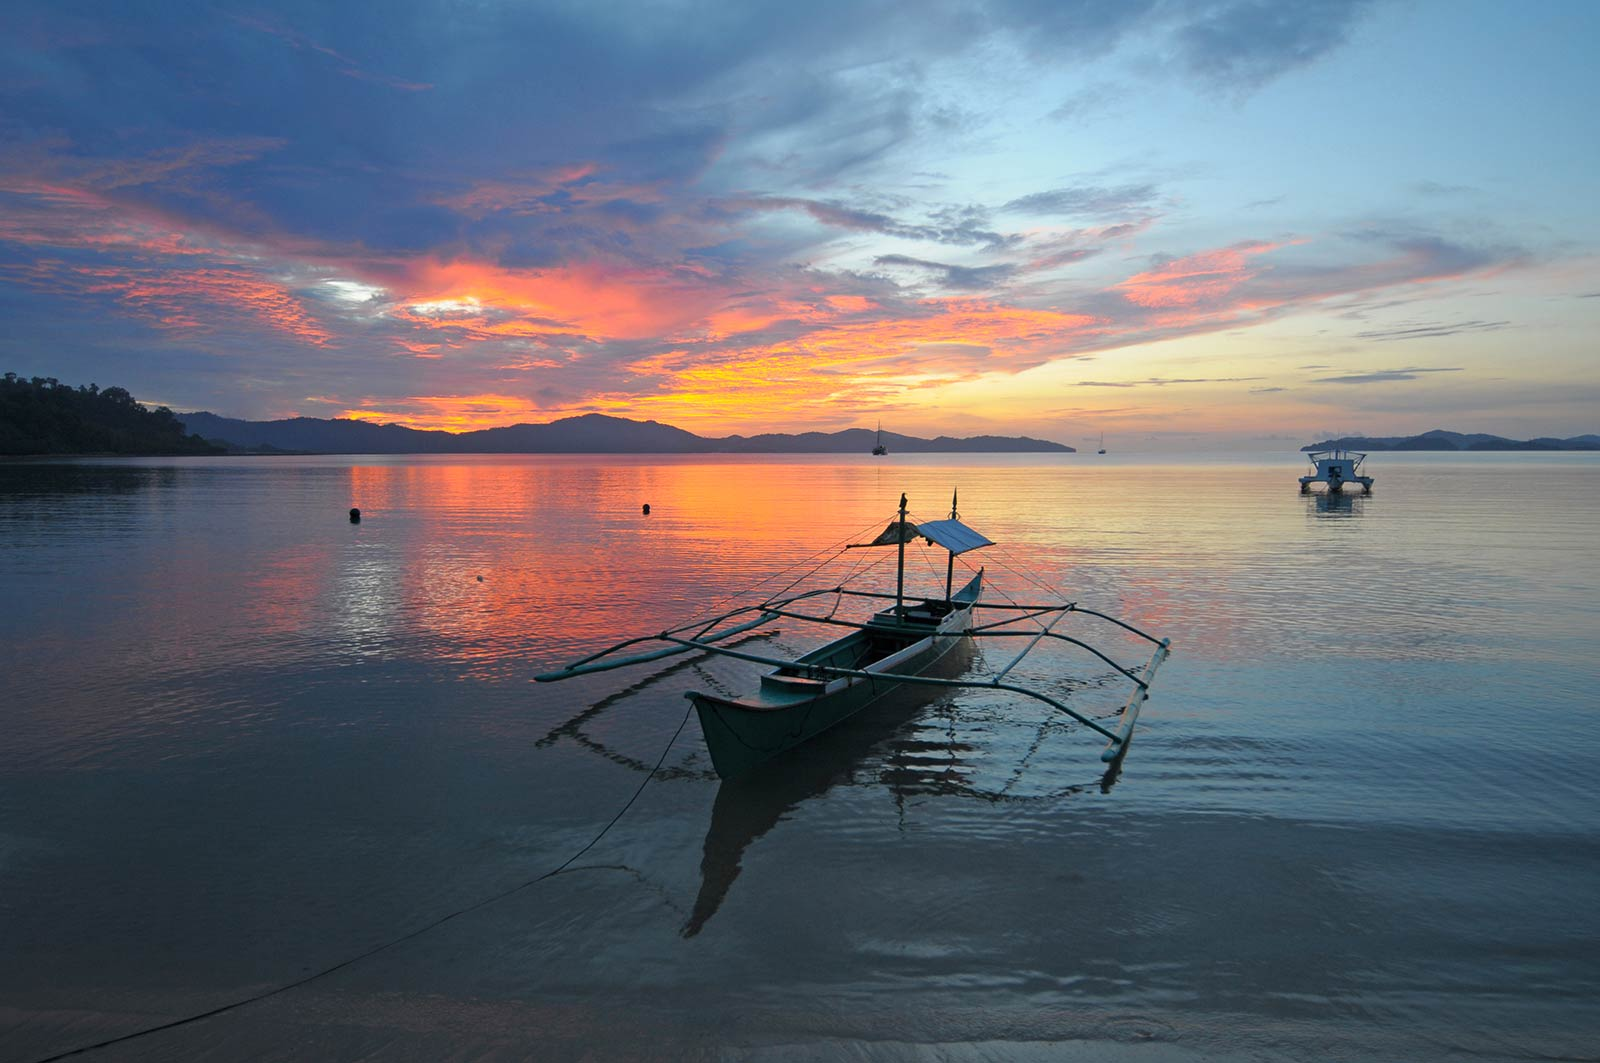 View of boat and the ocean early morning in the Philippines